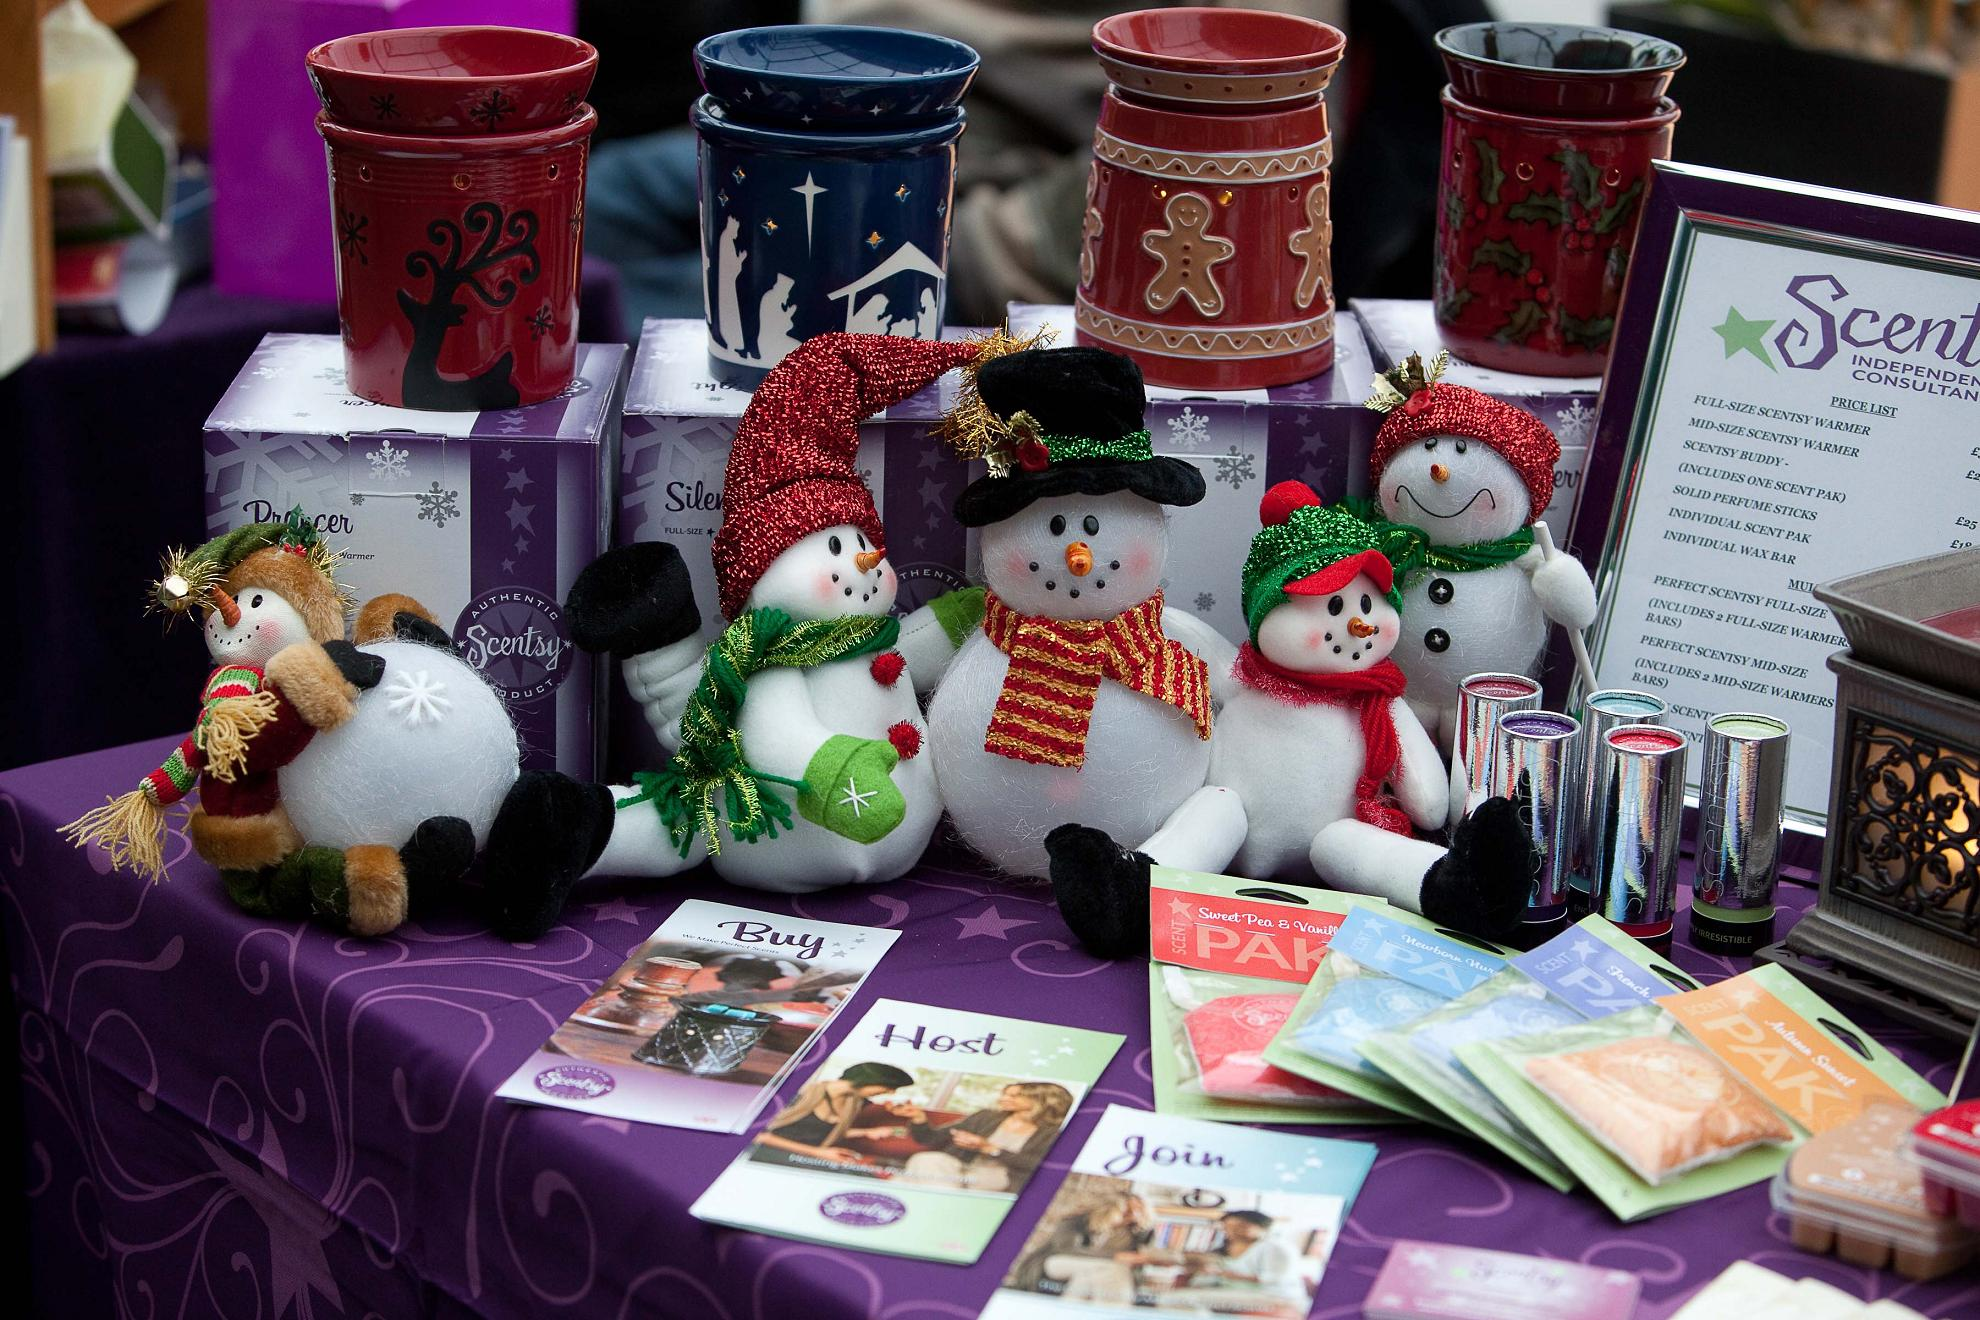 Carols and festive fun at Christmas market